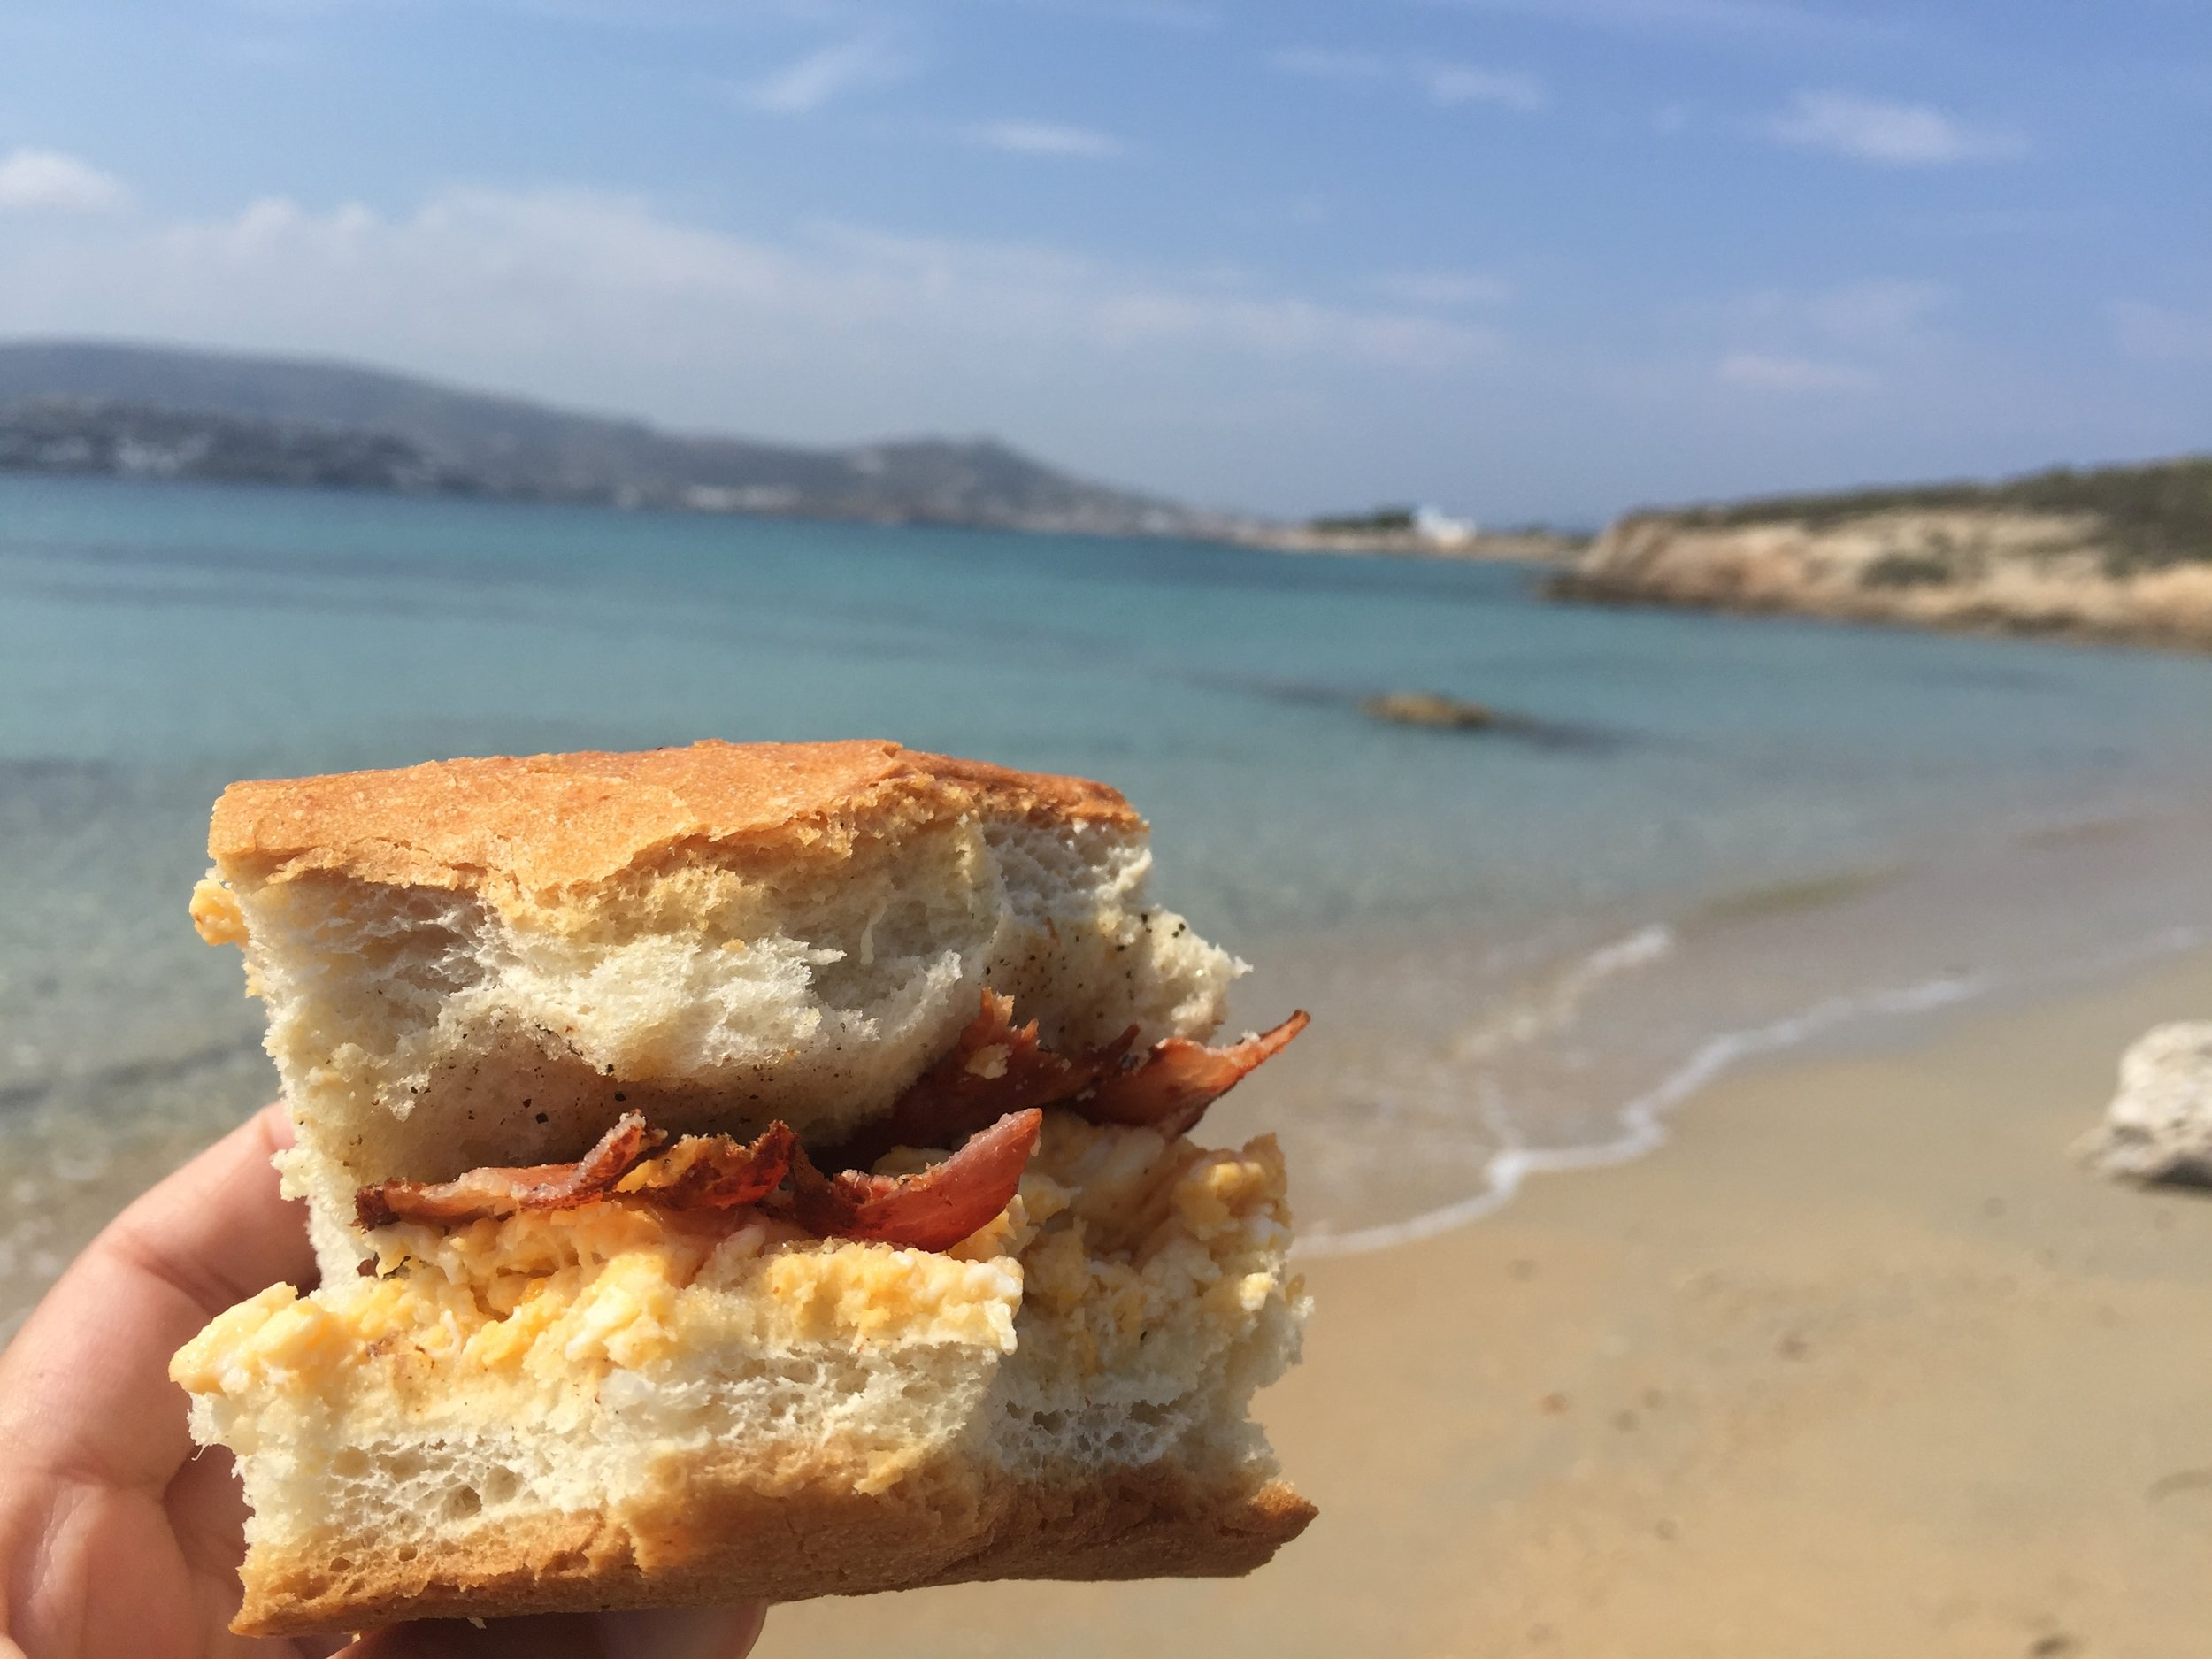 Bringing our own breakfast sandwiches to the beach :)